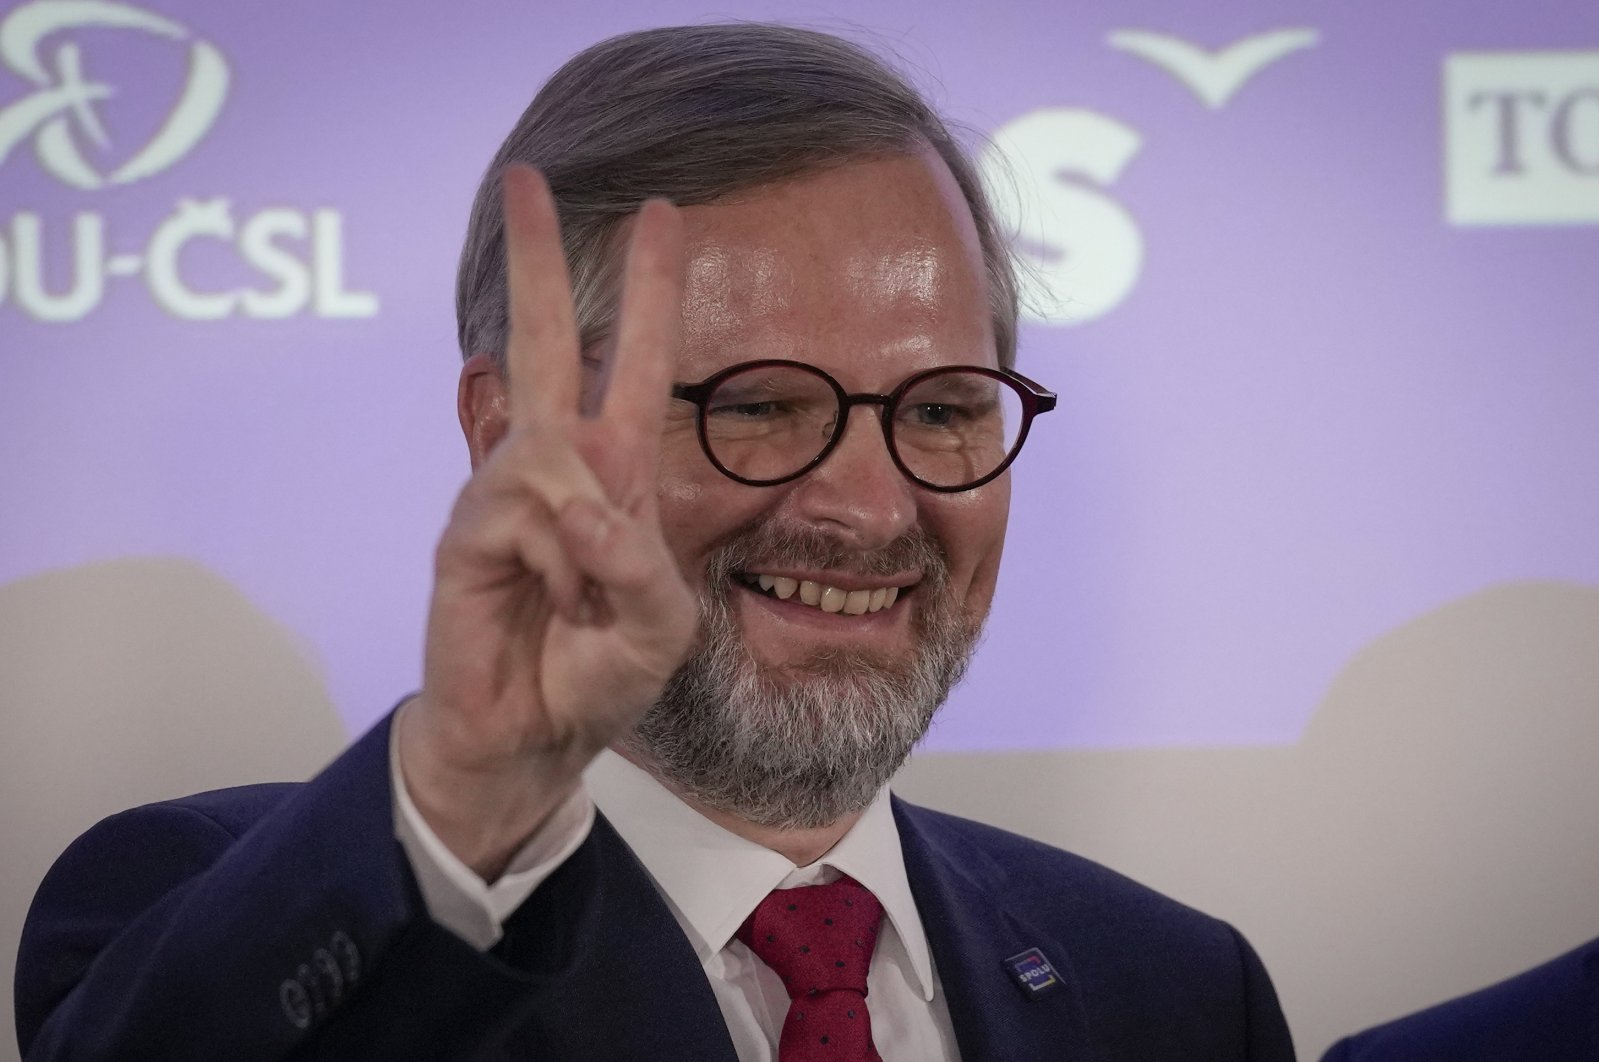 Leader of center-right Spolu (Together) coalition Petr Fiala flashes the V sign as he reacts to election results at the party's election headquarters, Prague, Czech Republic, Saturday, Oct. 9, 2021. (AP Photo)